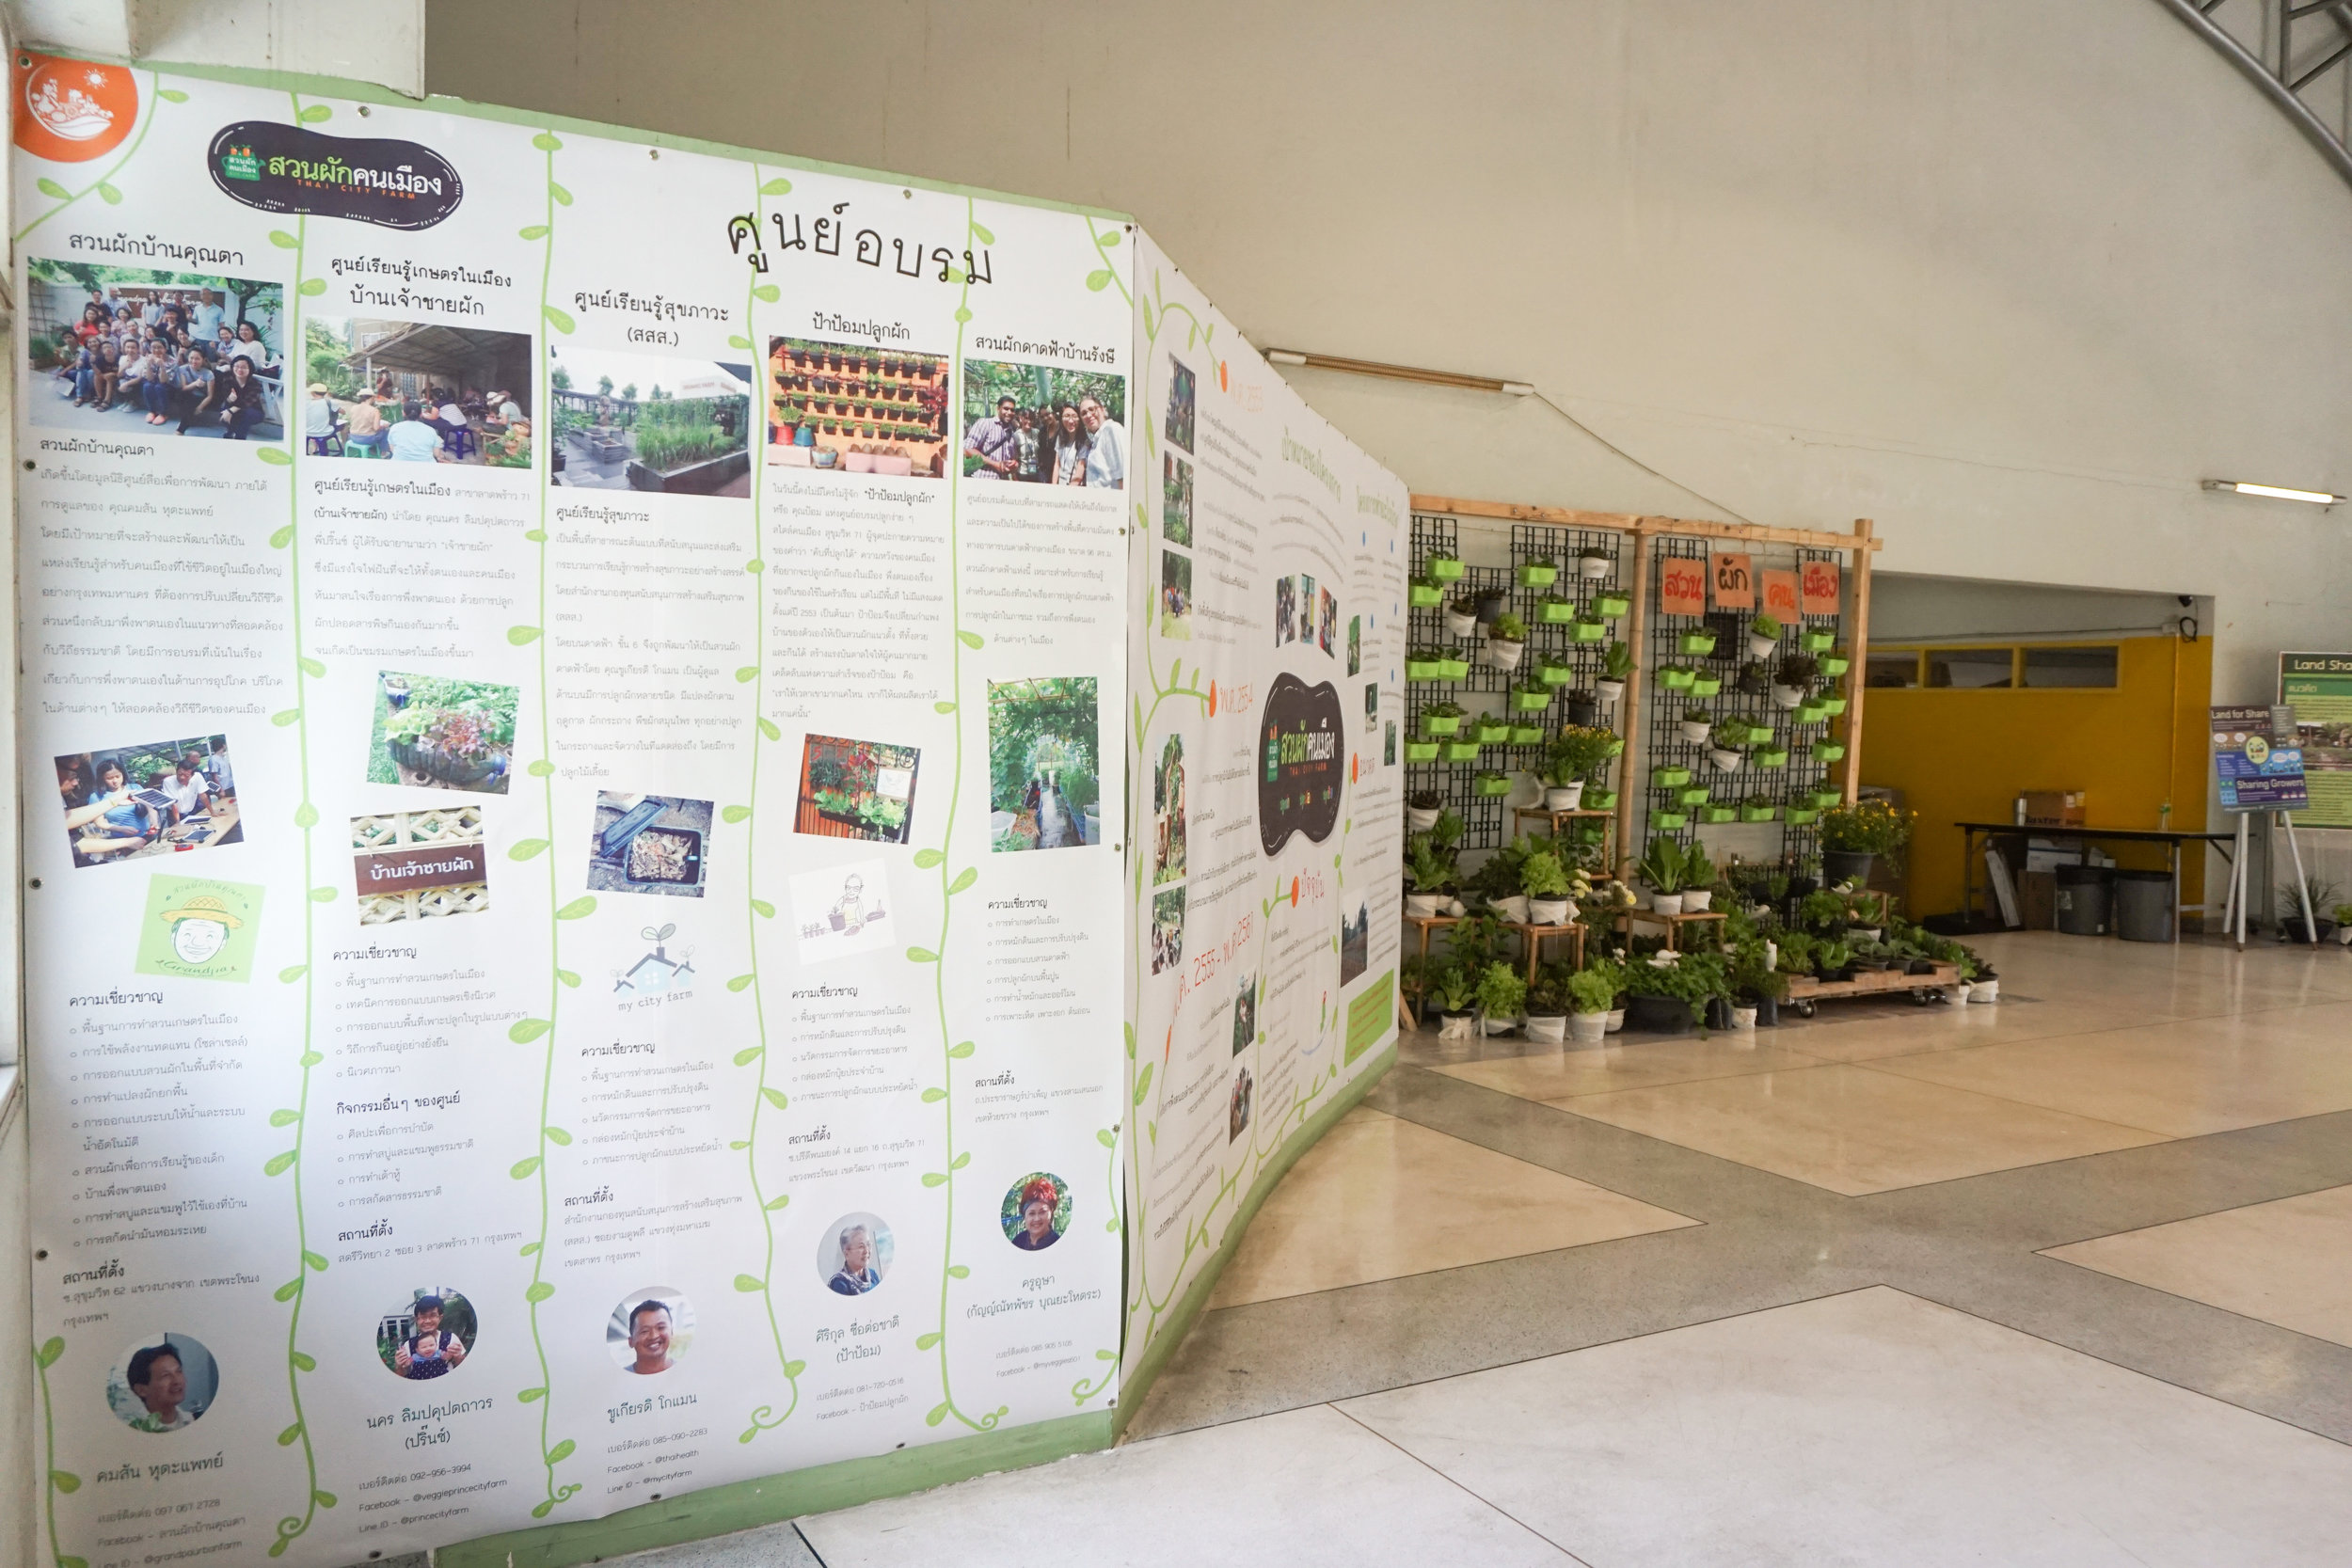 City Farming for a Sustainable City Event: Big board introducing urban farming projects and nodes around Thailand